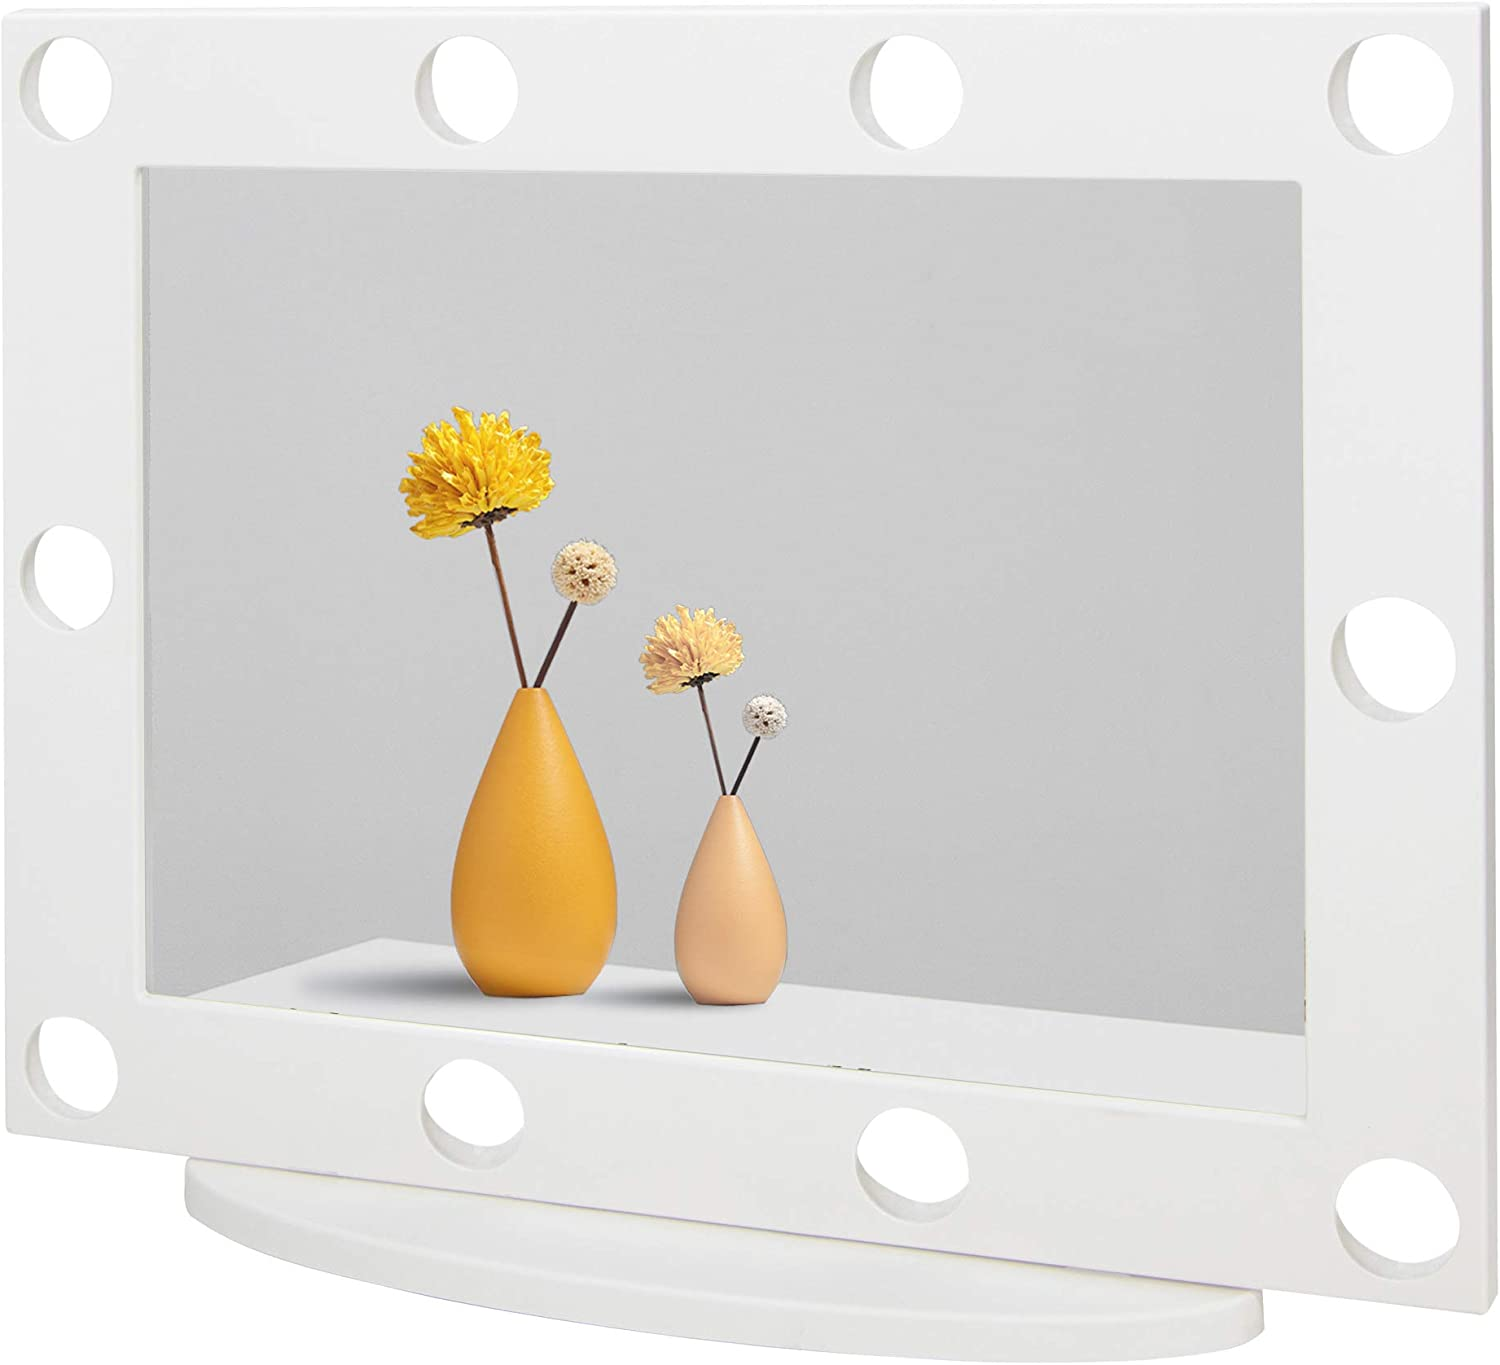 Waneway Vanity Mirror with 10 Pre-Drilled Holes Compatible with Hollywood Lights Kit, DIY Lighted Vanity Makeup Mirror with No Visible Cords, Tabletop or Wall Mount, White (Lights Kit Not Included)